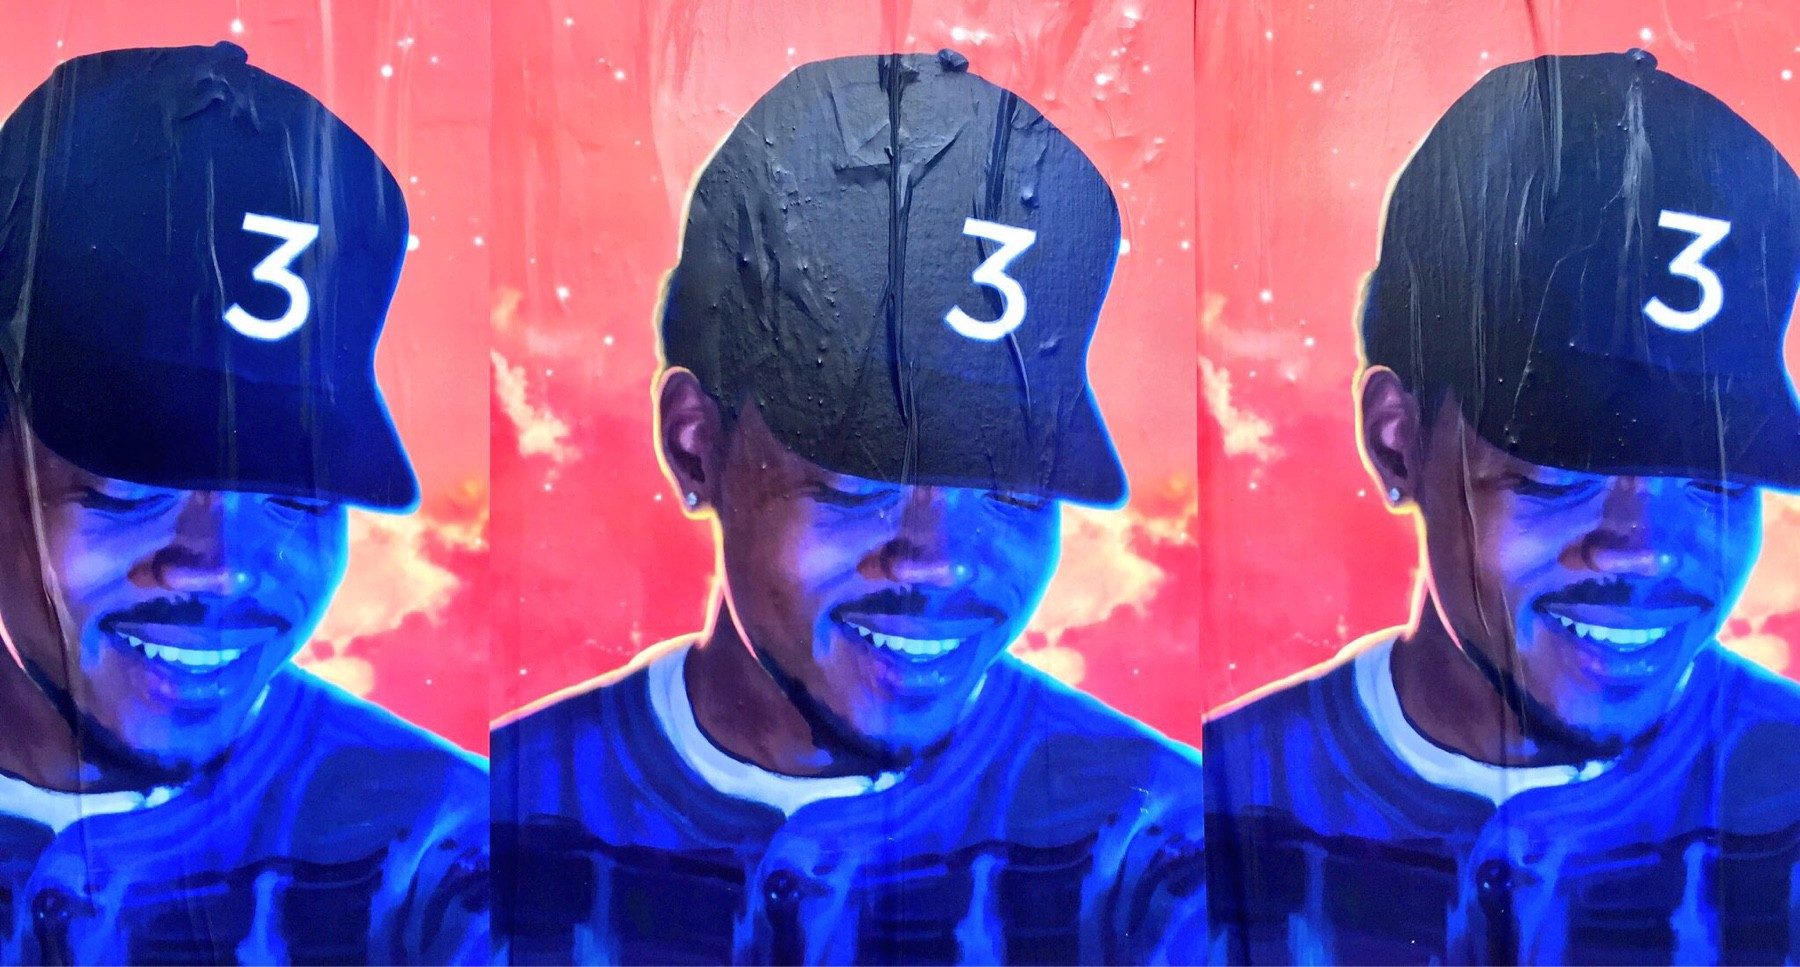 22 Of Chance The Rapper S Most Inspiring And Heartbreaking Lyrics By Sean Freidlin Medium